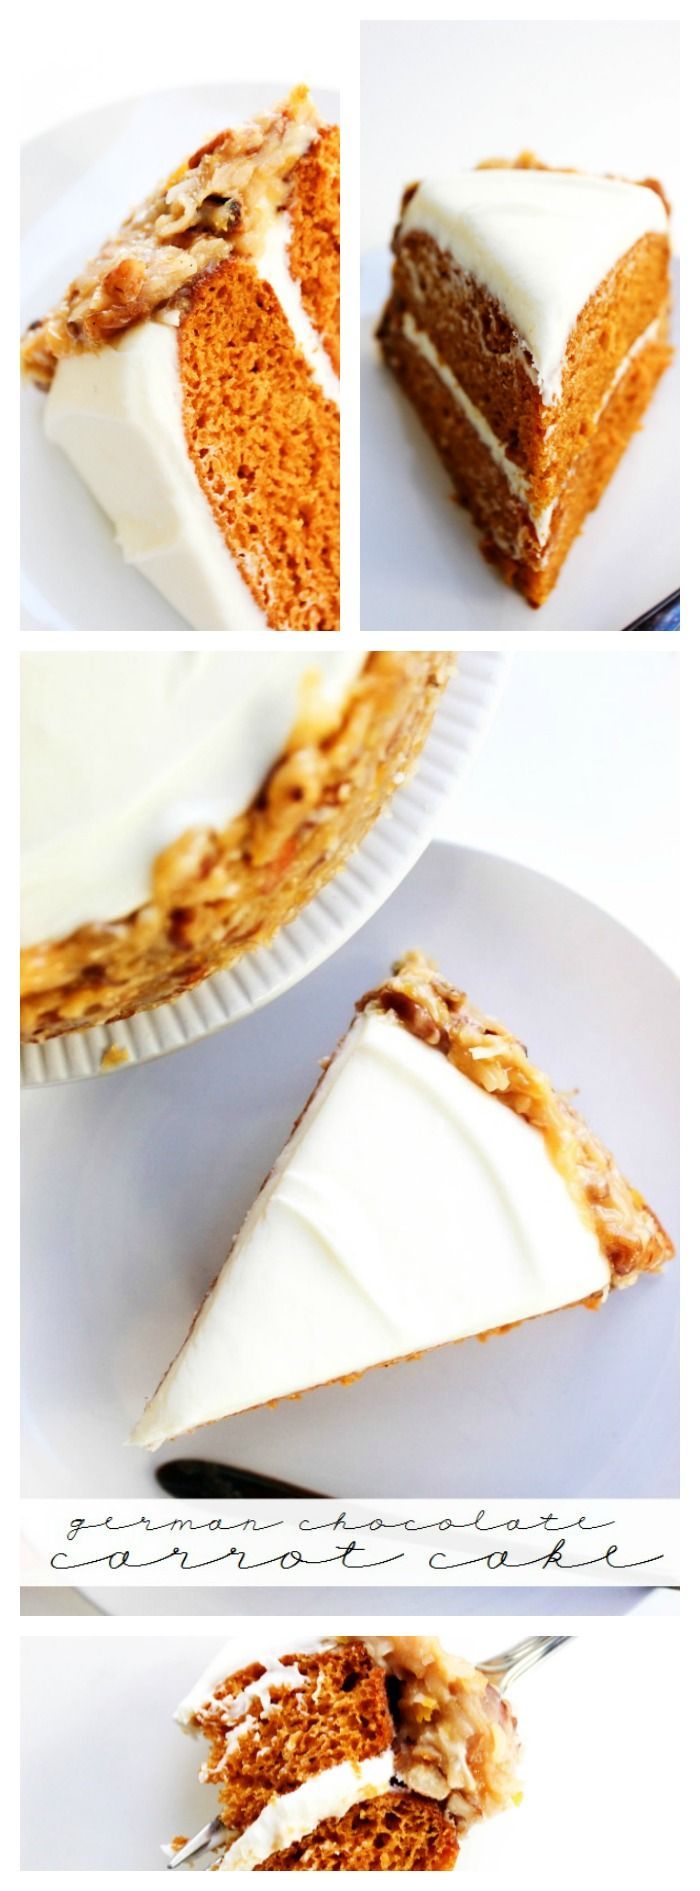 German Chocolate Carrot Cake Recipe Frosting And